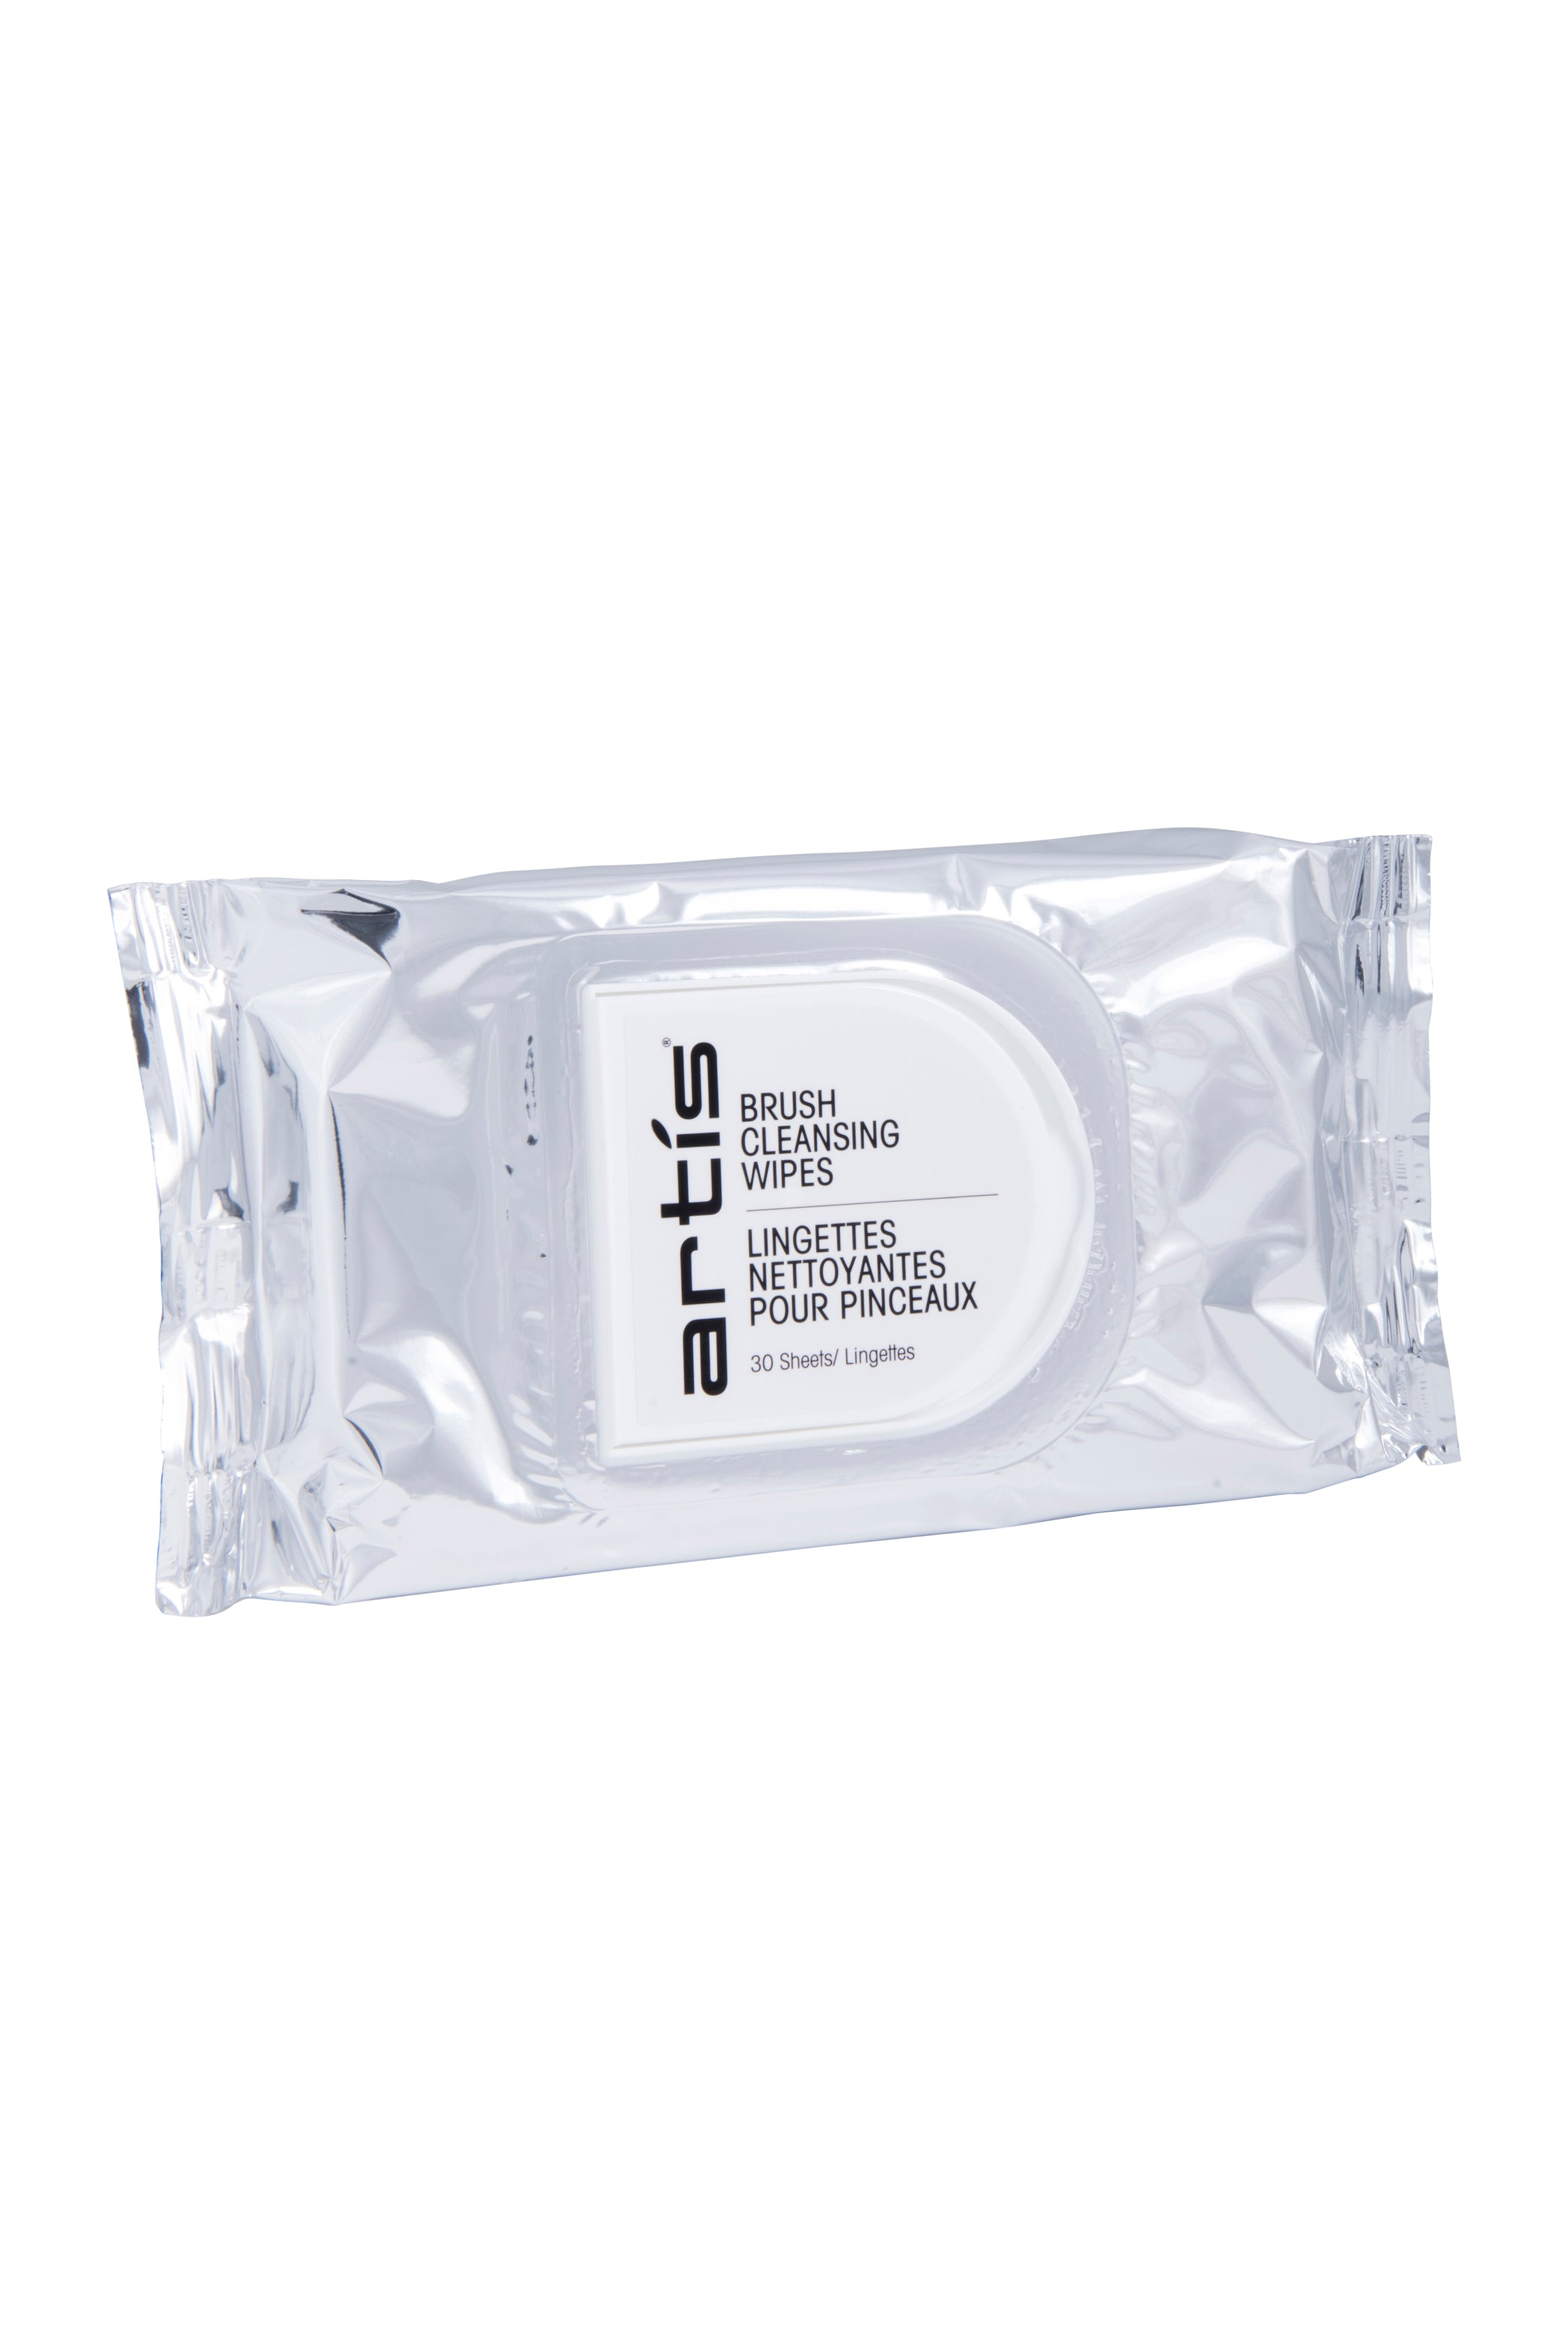 Brush Cleansing Wipes